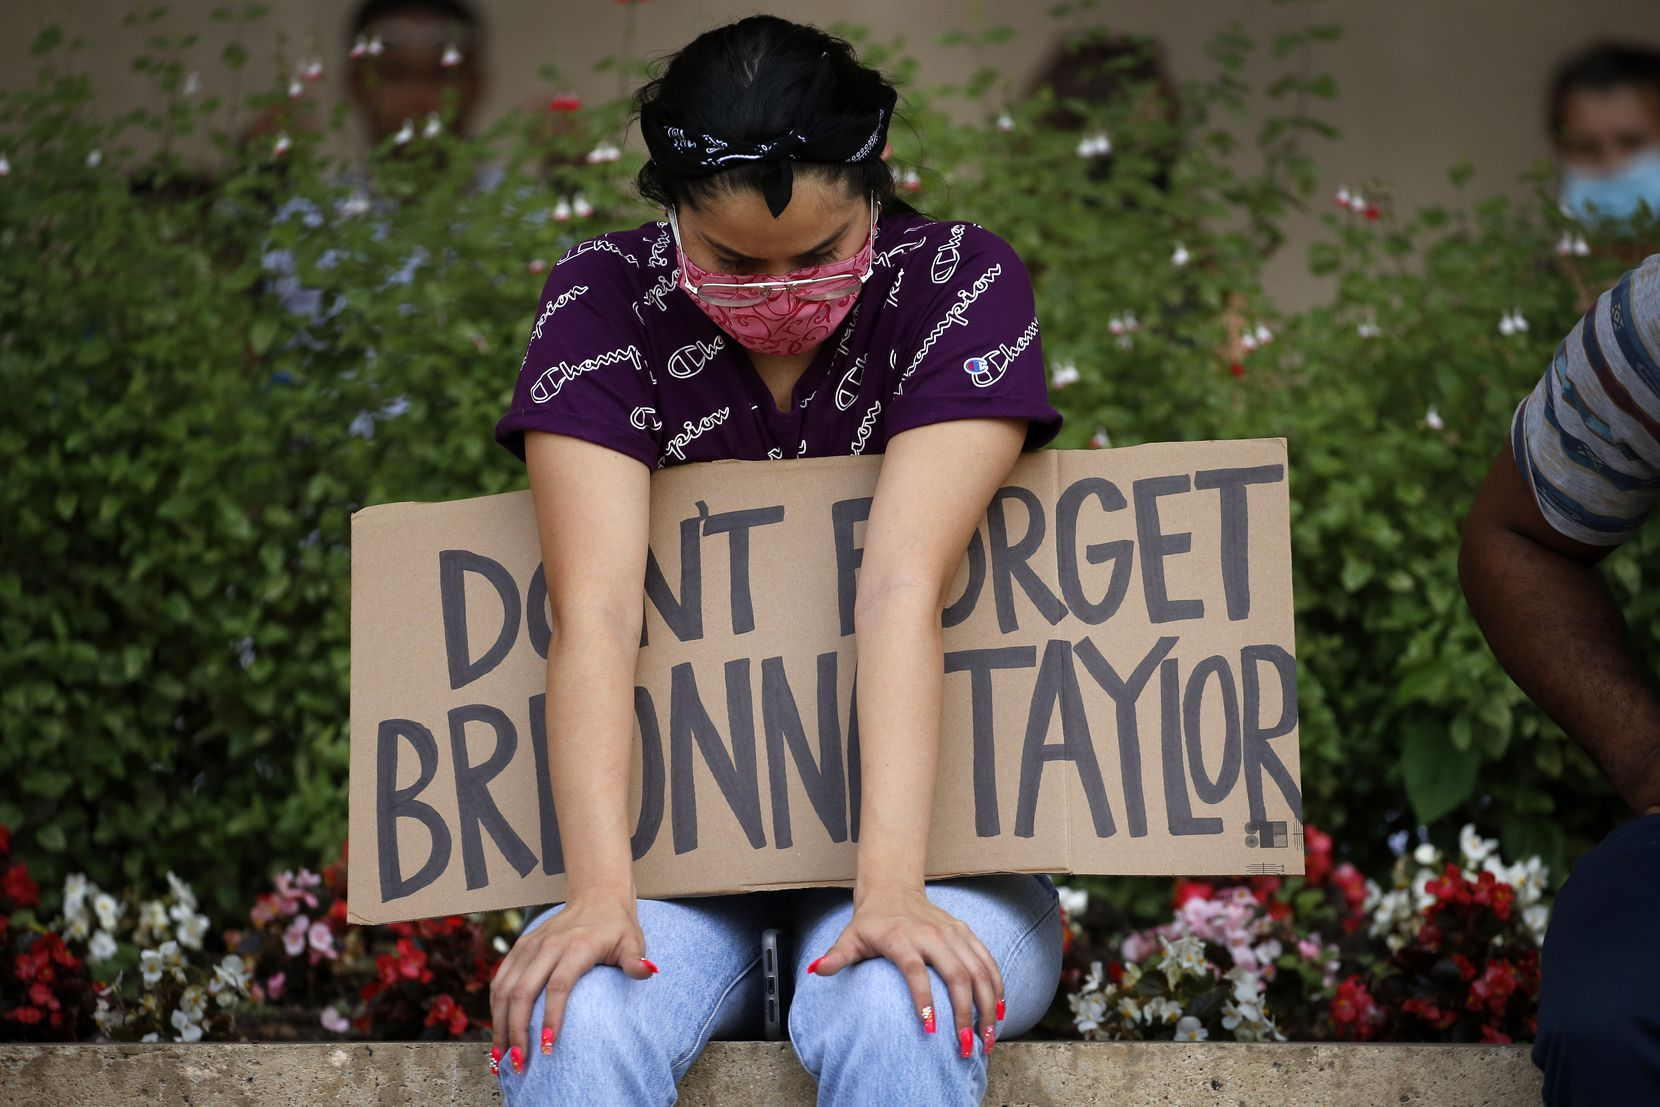 A protester supporting Breonna Taylor, the Kentucky woman fatally shot by police in March, attended a Black Lives Matter rally at Dallas City Hall before marching through downtown to Dealey Plaza in early June.